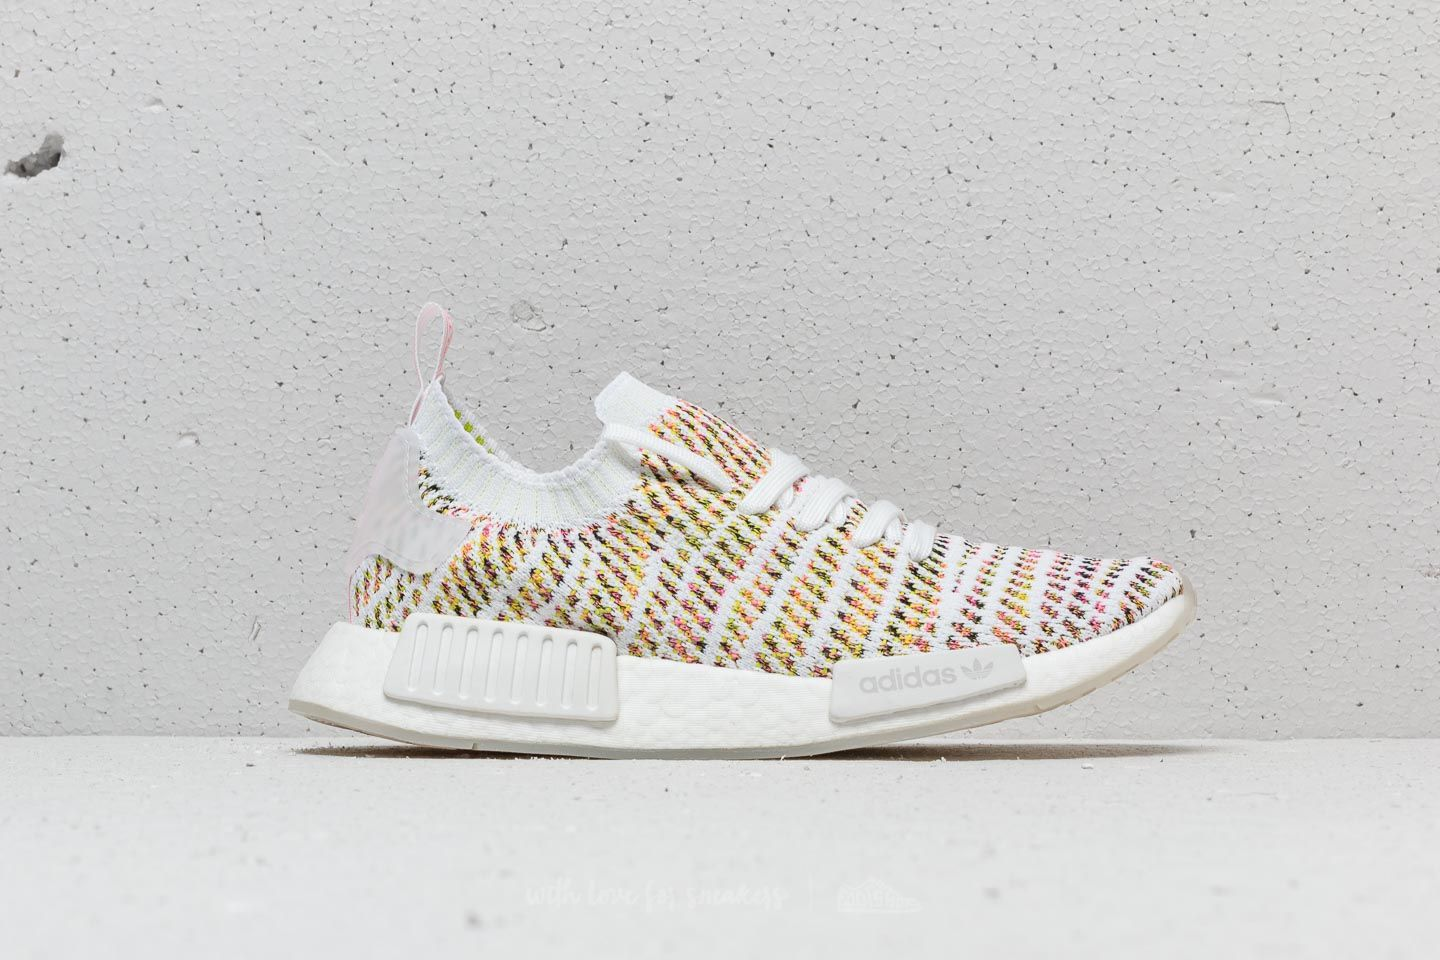 ddfa47fef adidas NMD R1 W Cloud White  Semi-Solar Yellow-Solar Pink at a great